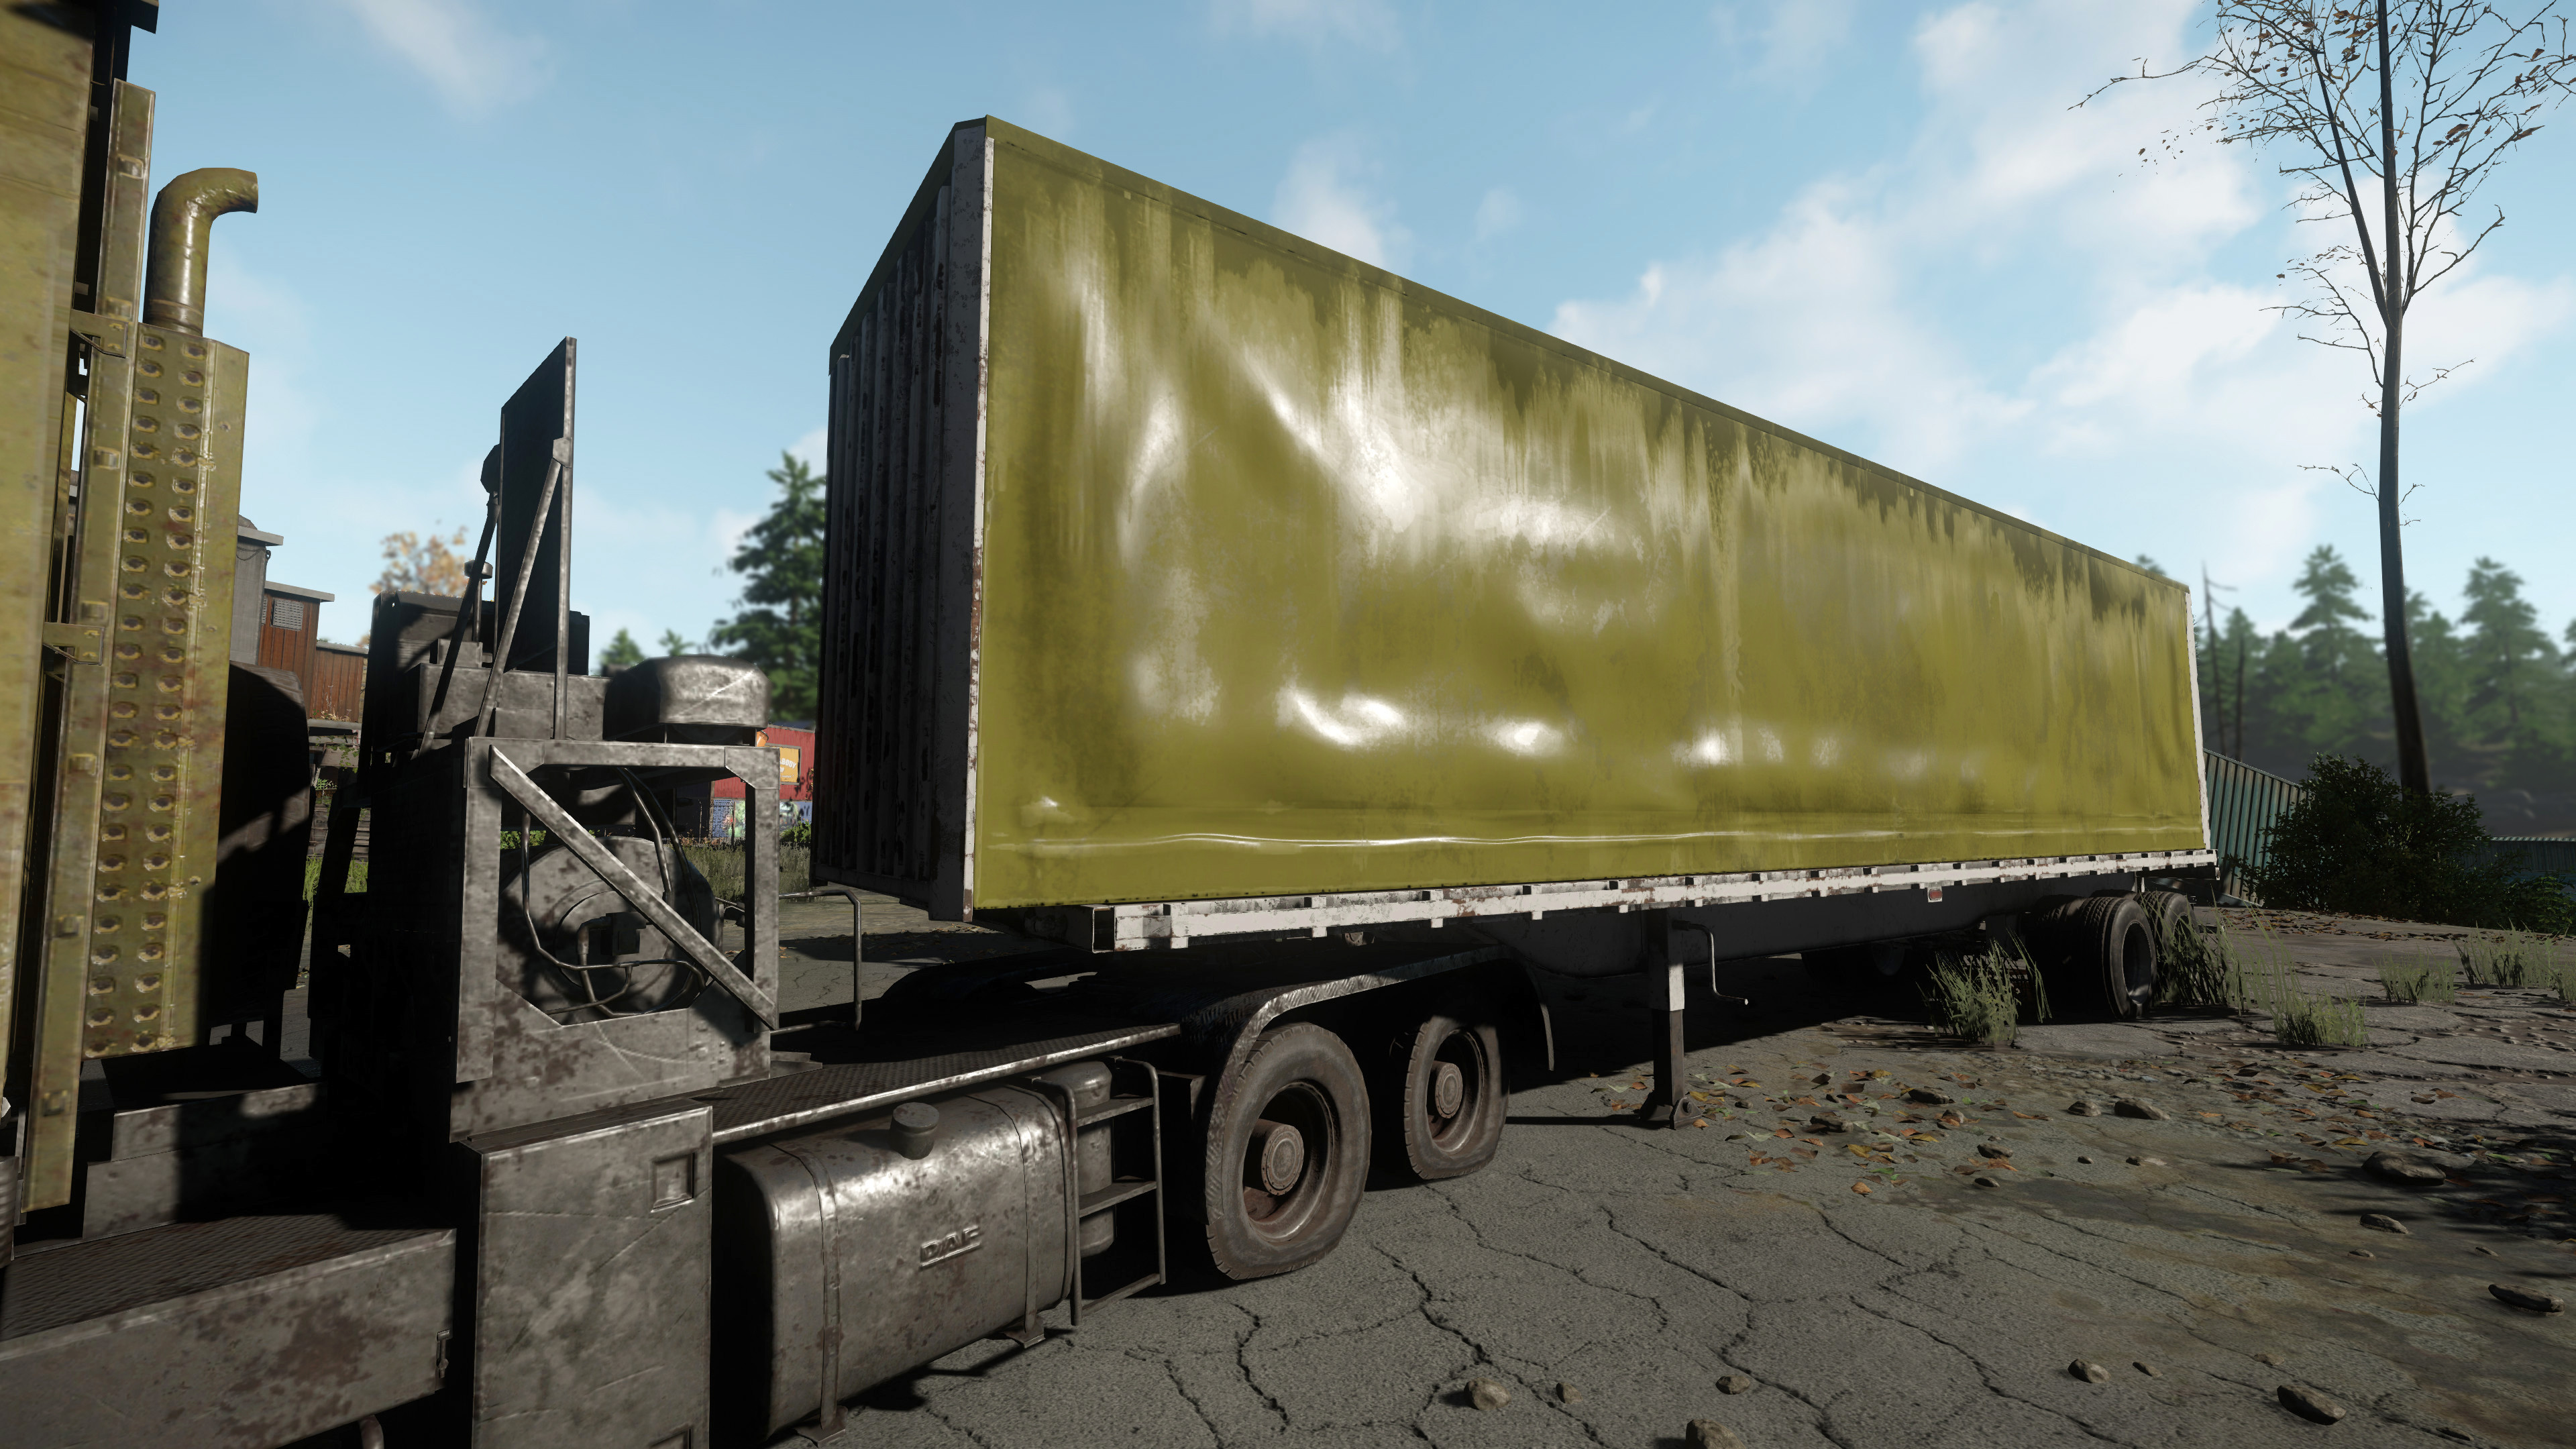 Semi Trailer, I was responsible for creating the Trailer only. The Truck is an existing model that I did a texture conversion on to suit.